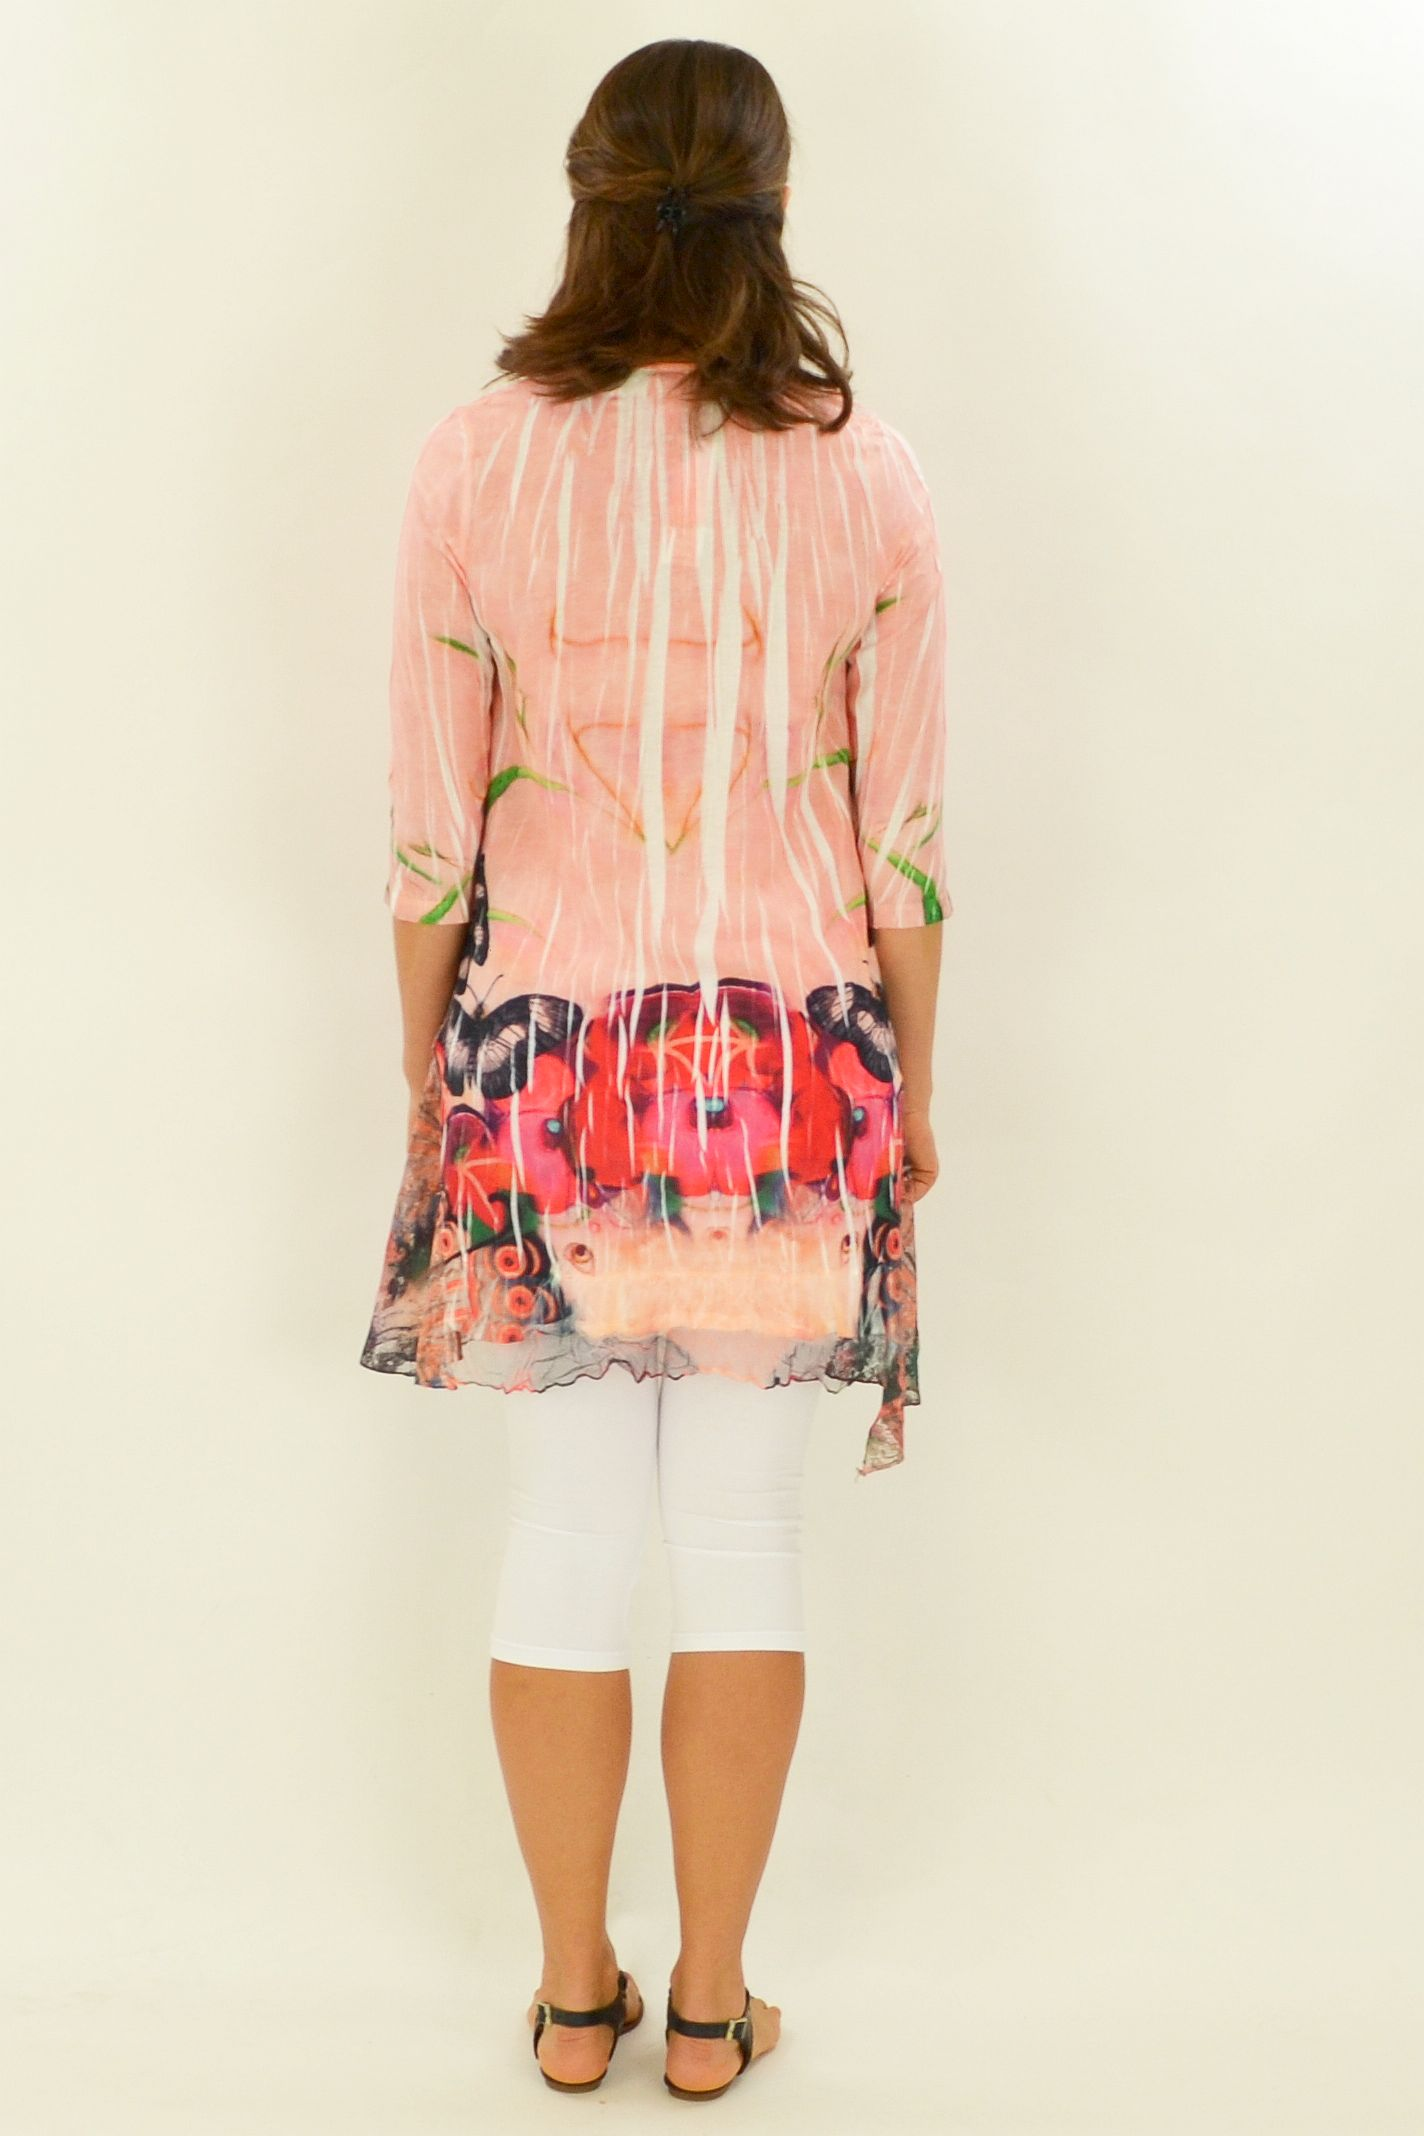 Poppies and Butterflies Tunic - at I Love Tunics @ www.ilovetunics.com = Number One! Tunics Destination